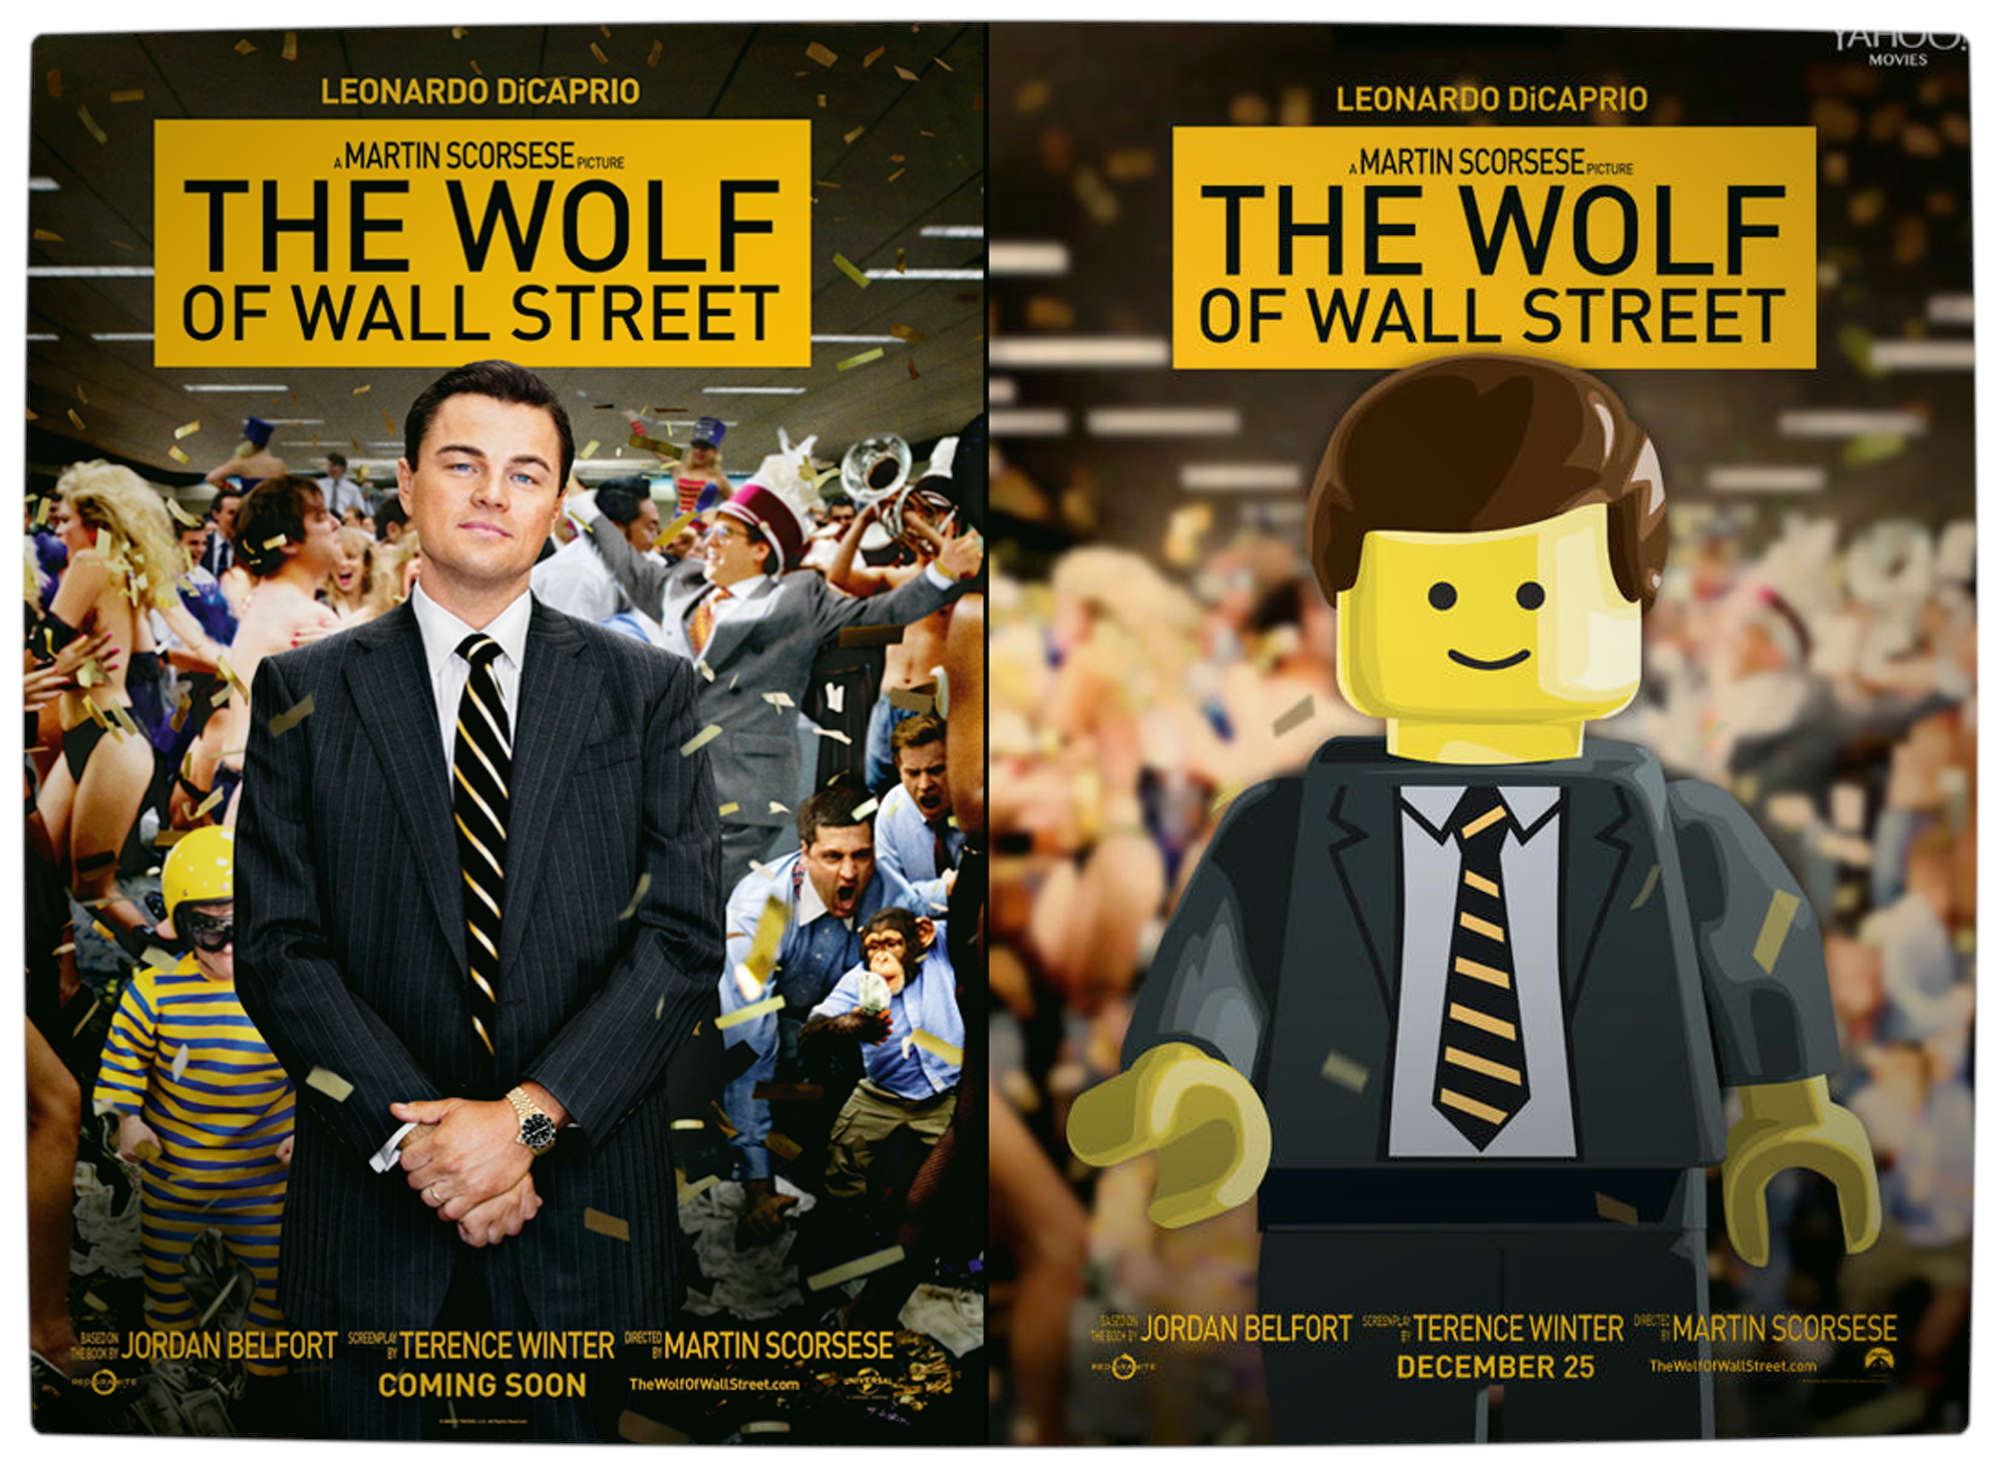 Vamers - Geekosphere - Artistry - 2014's Best Picture Oscar Nominees Recreated as Lego Movies - The Wold of Wall Street - Final